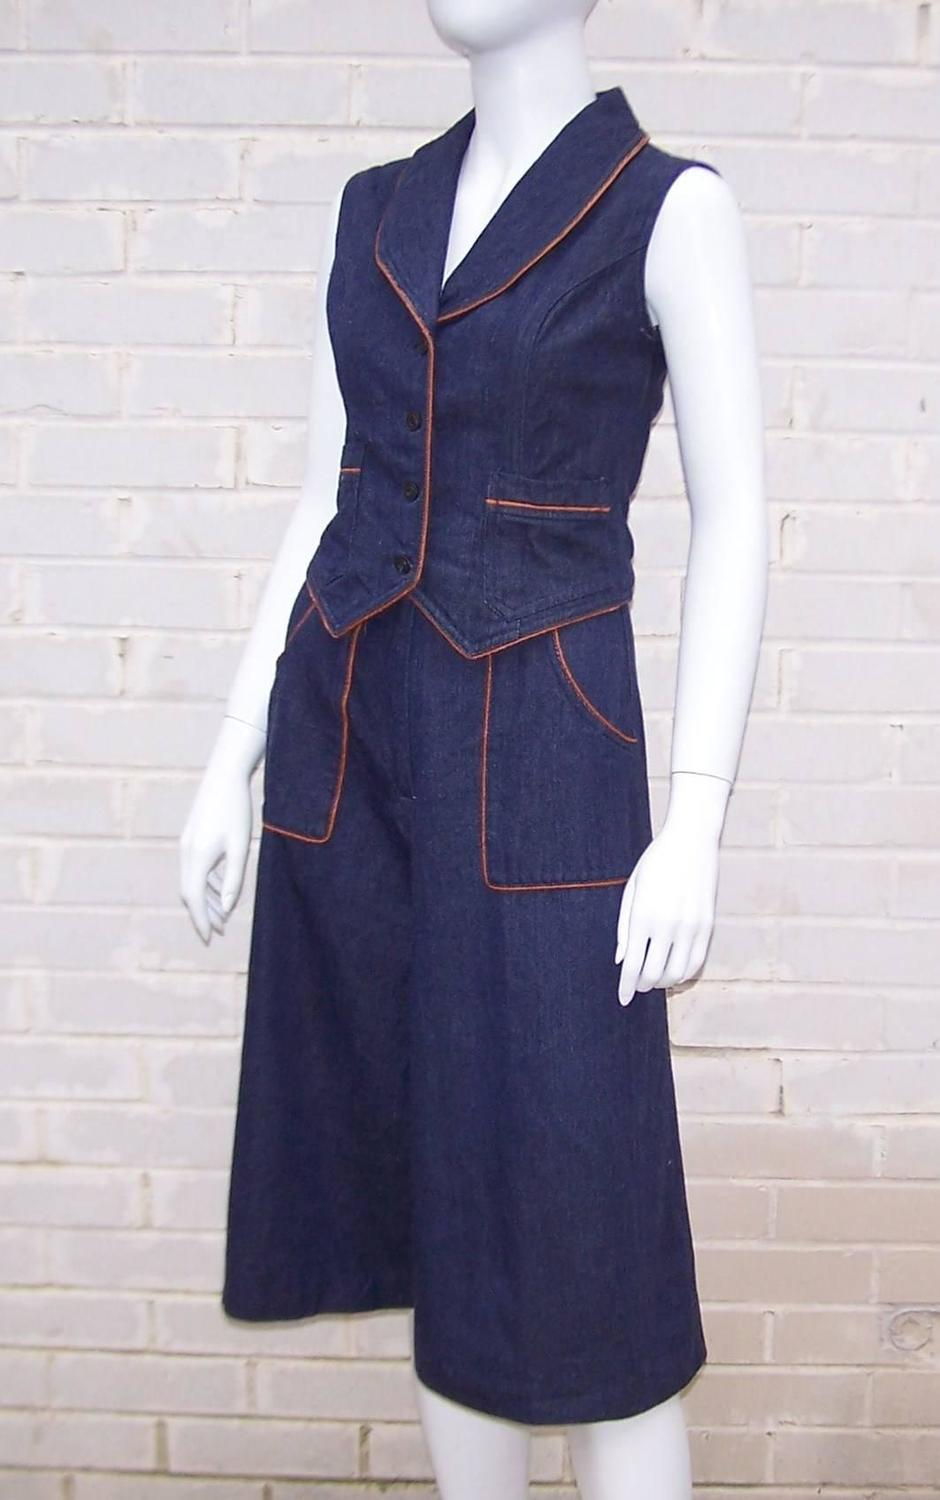 1970s Denim Gaucho Pants and Vest Suit For Sale at 1stdibs